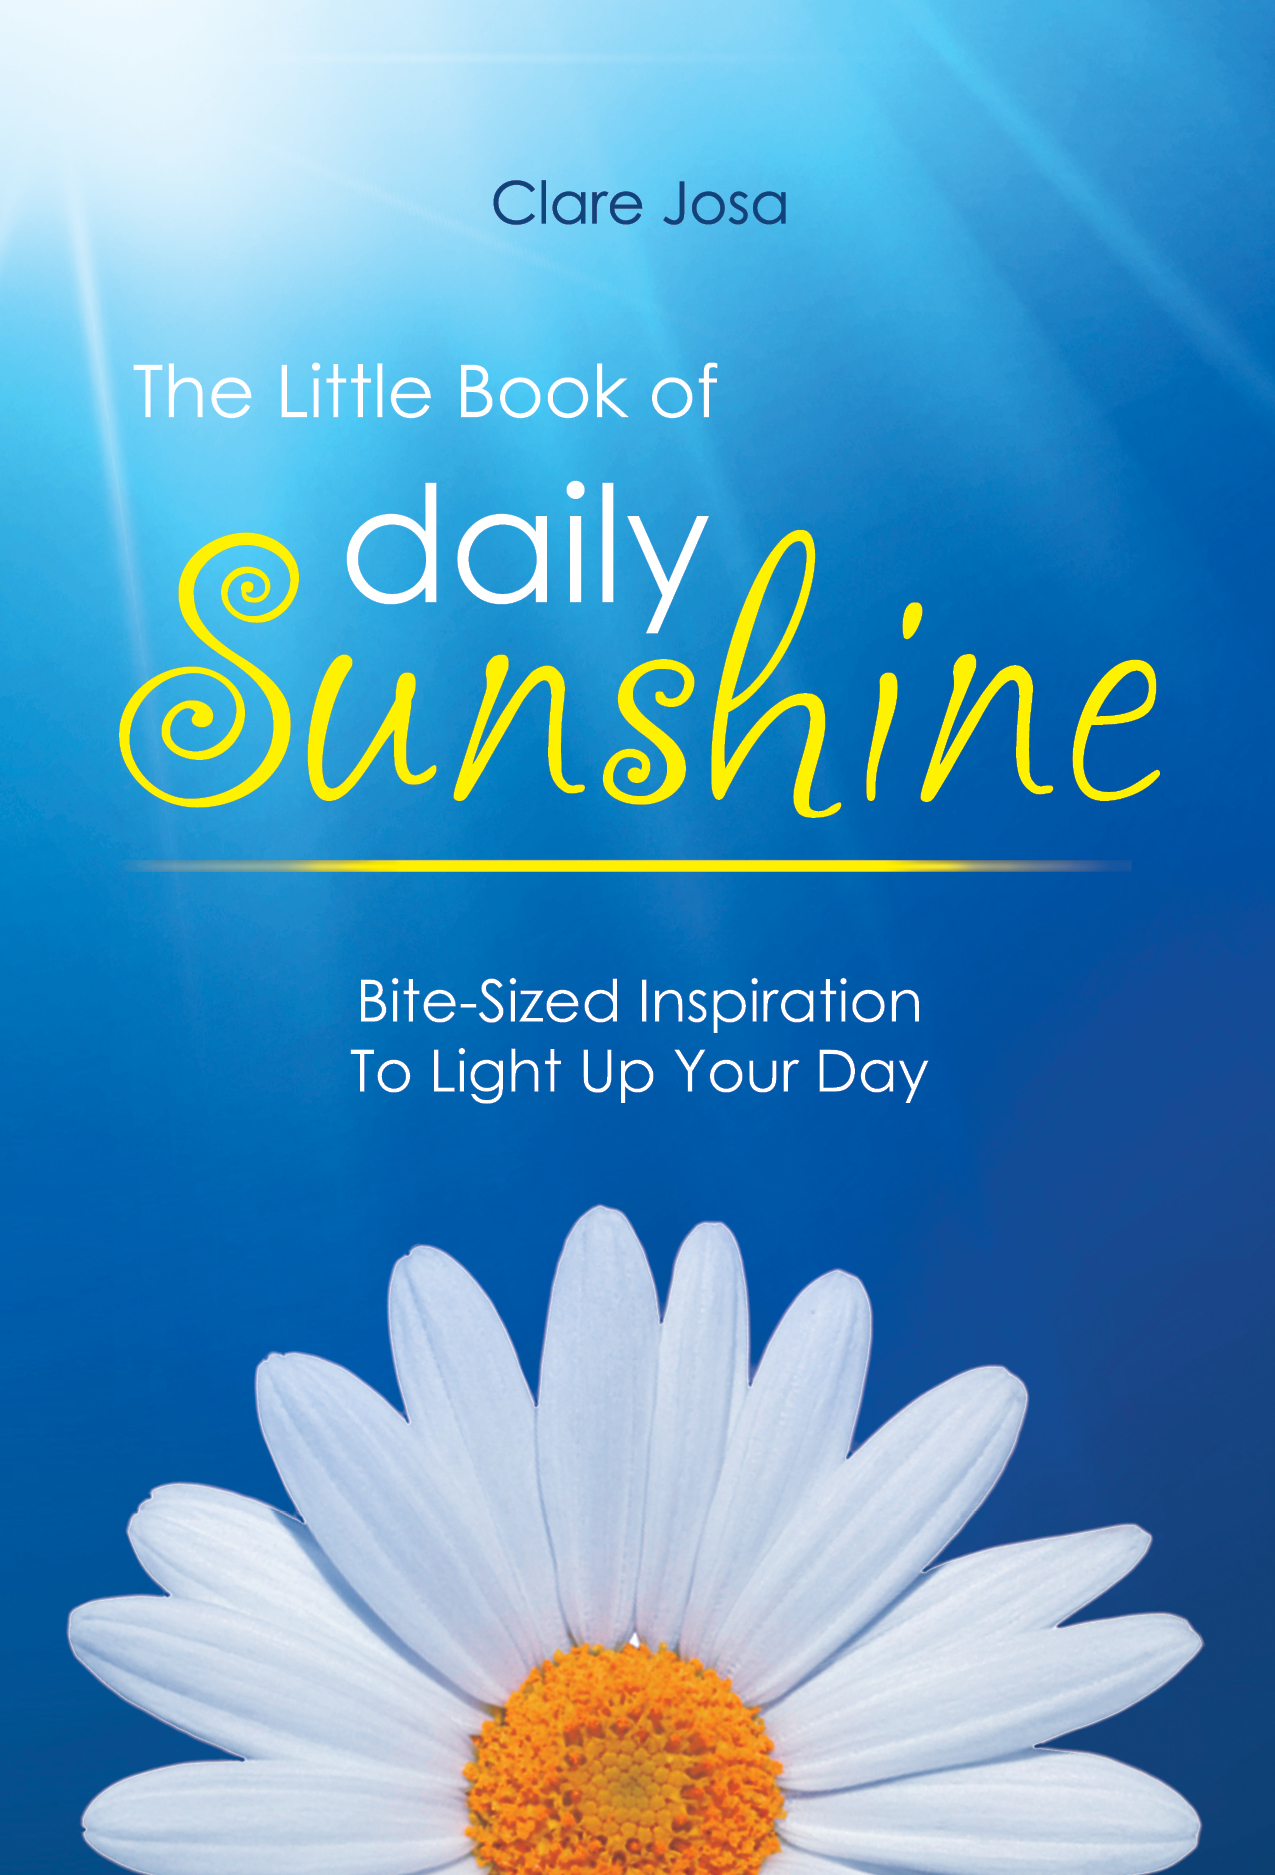 The Little Book Of Daily Sunshine - ISBN 978-1908854407